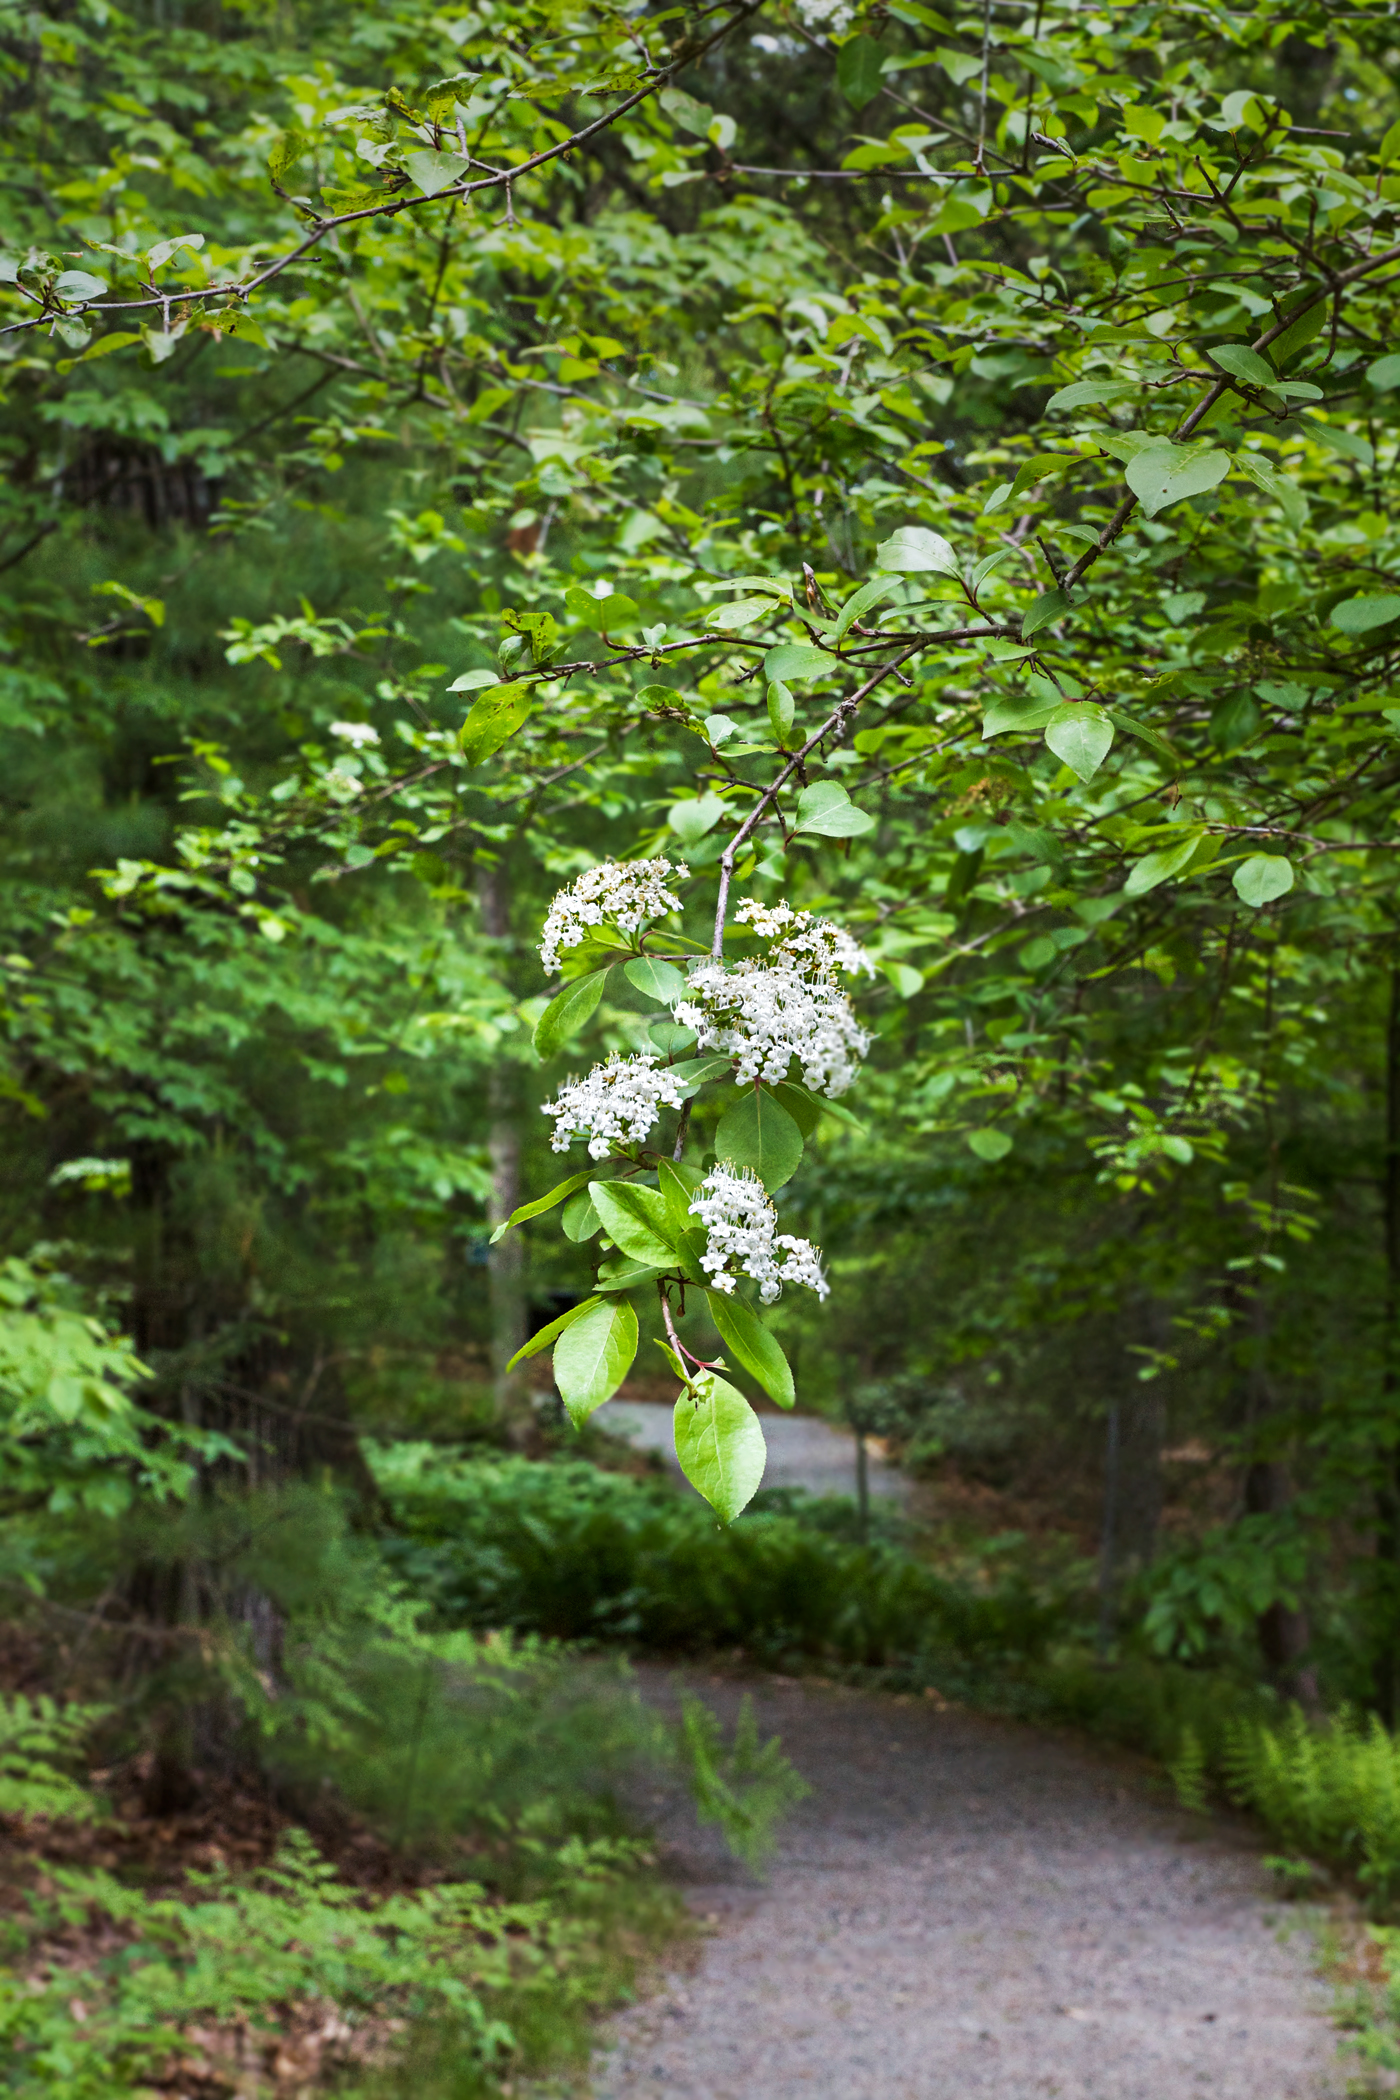 Garden in the Woods, Viburnum lentago,  Nannyberry, by Justine Hand for Gardenista